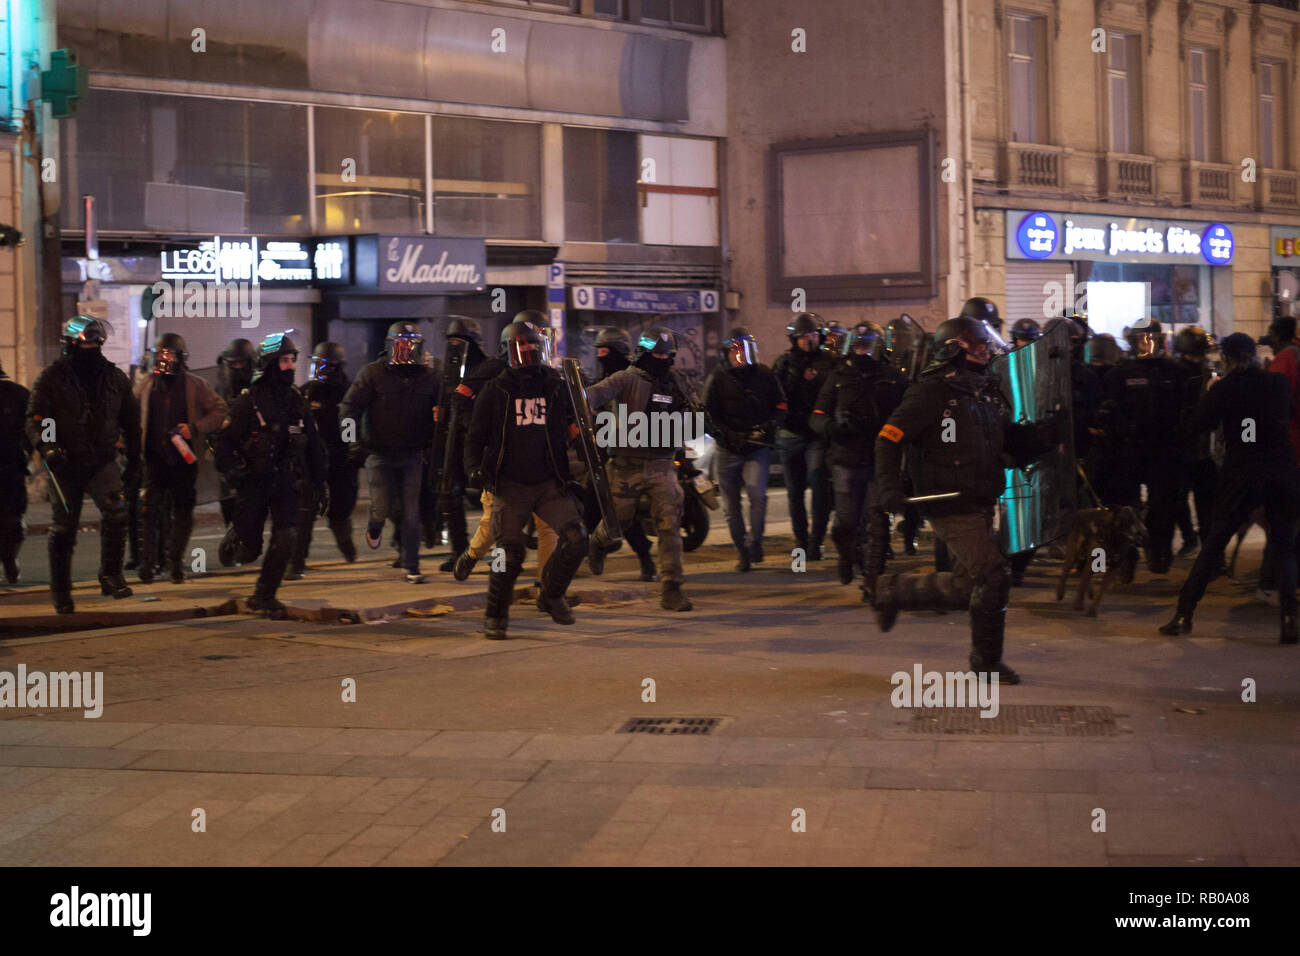 Paris, France. 5th Jan, 2019. Demonstration of Yellow Vests in Paris on January 5, 2019 Credit: Yann Bohac/ZUMA Wire/Alamy Live News Stock Photo